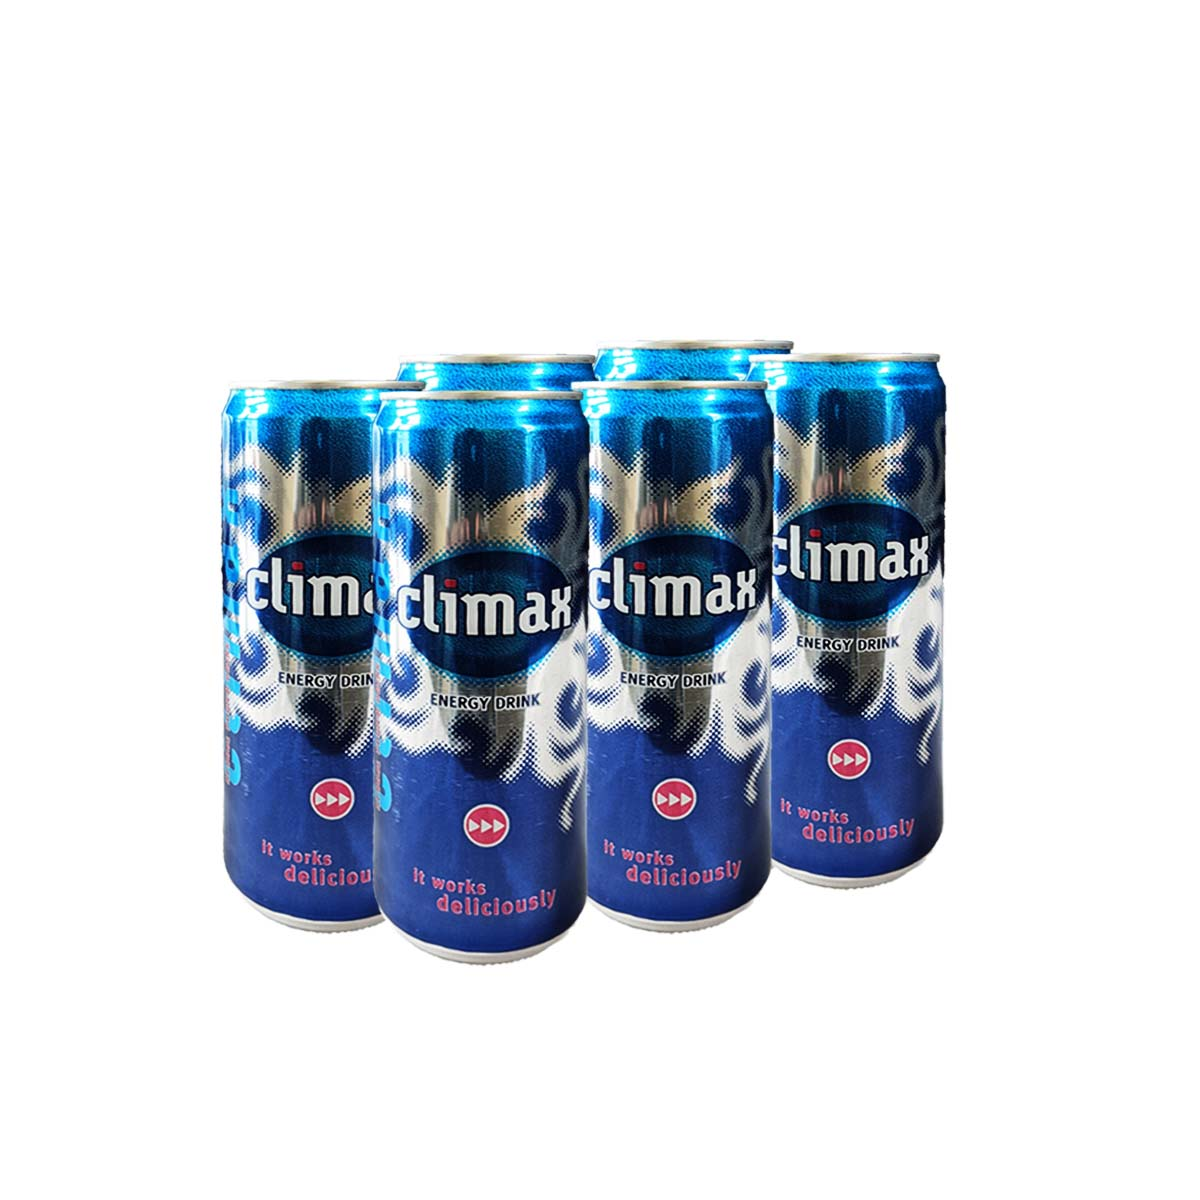 Climax Energy Drink 33cl x 6